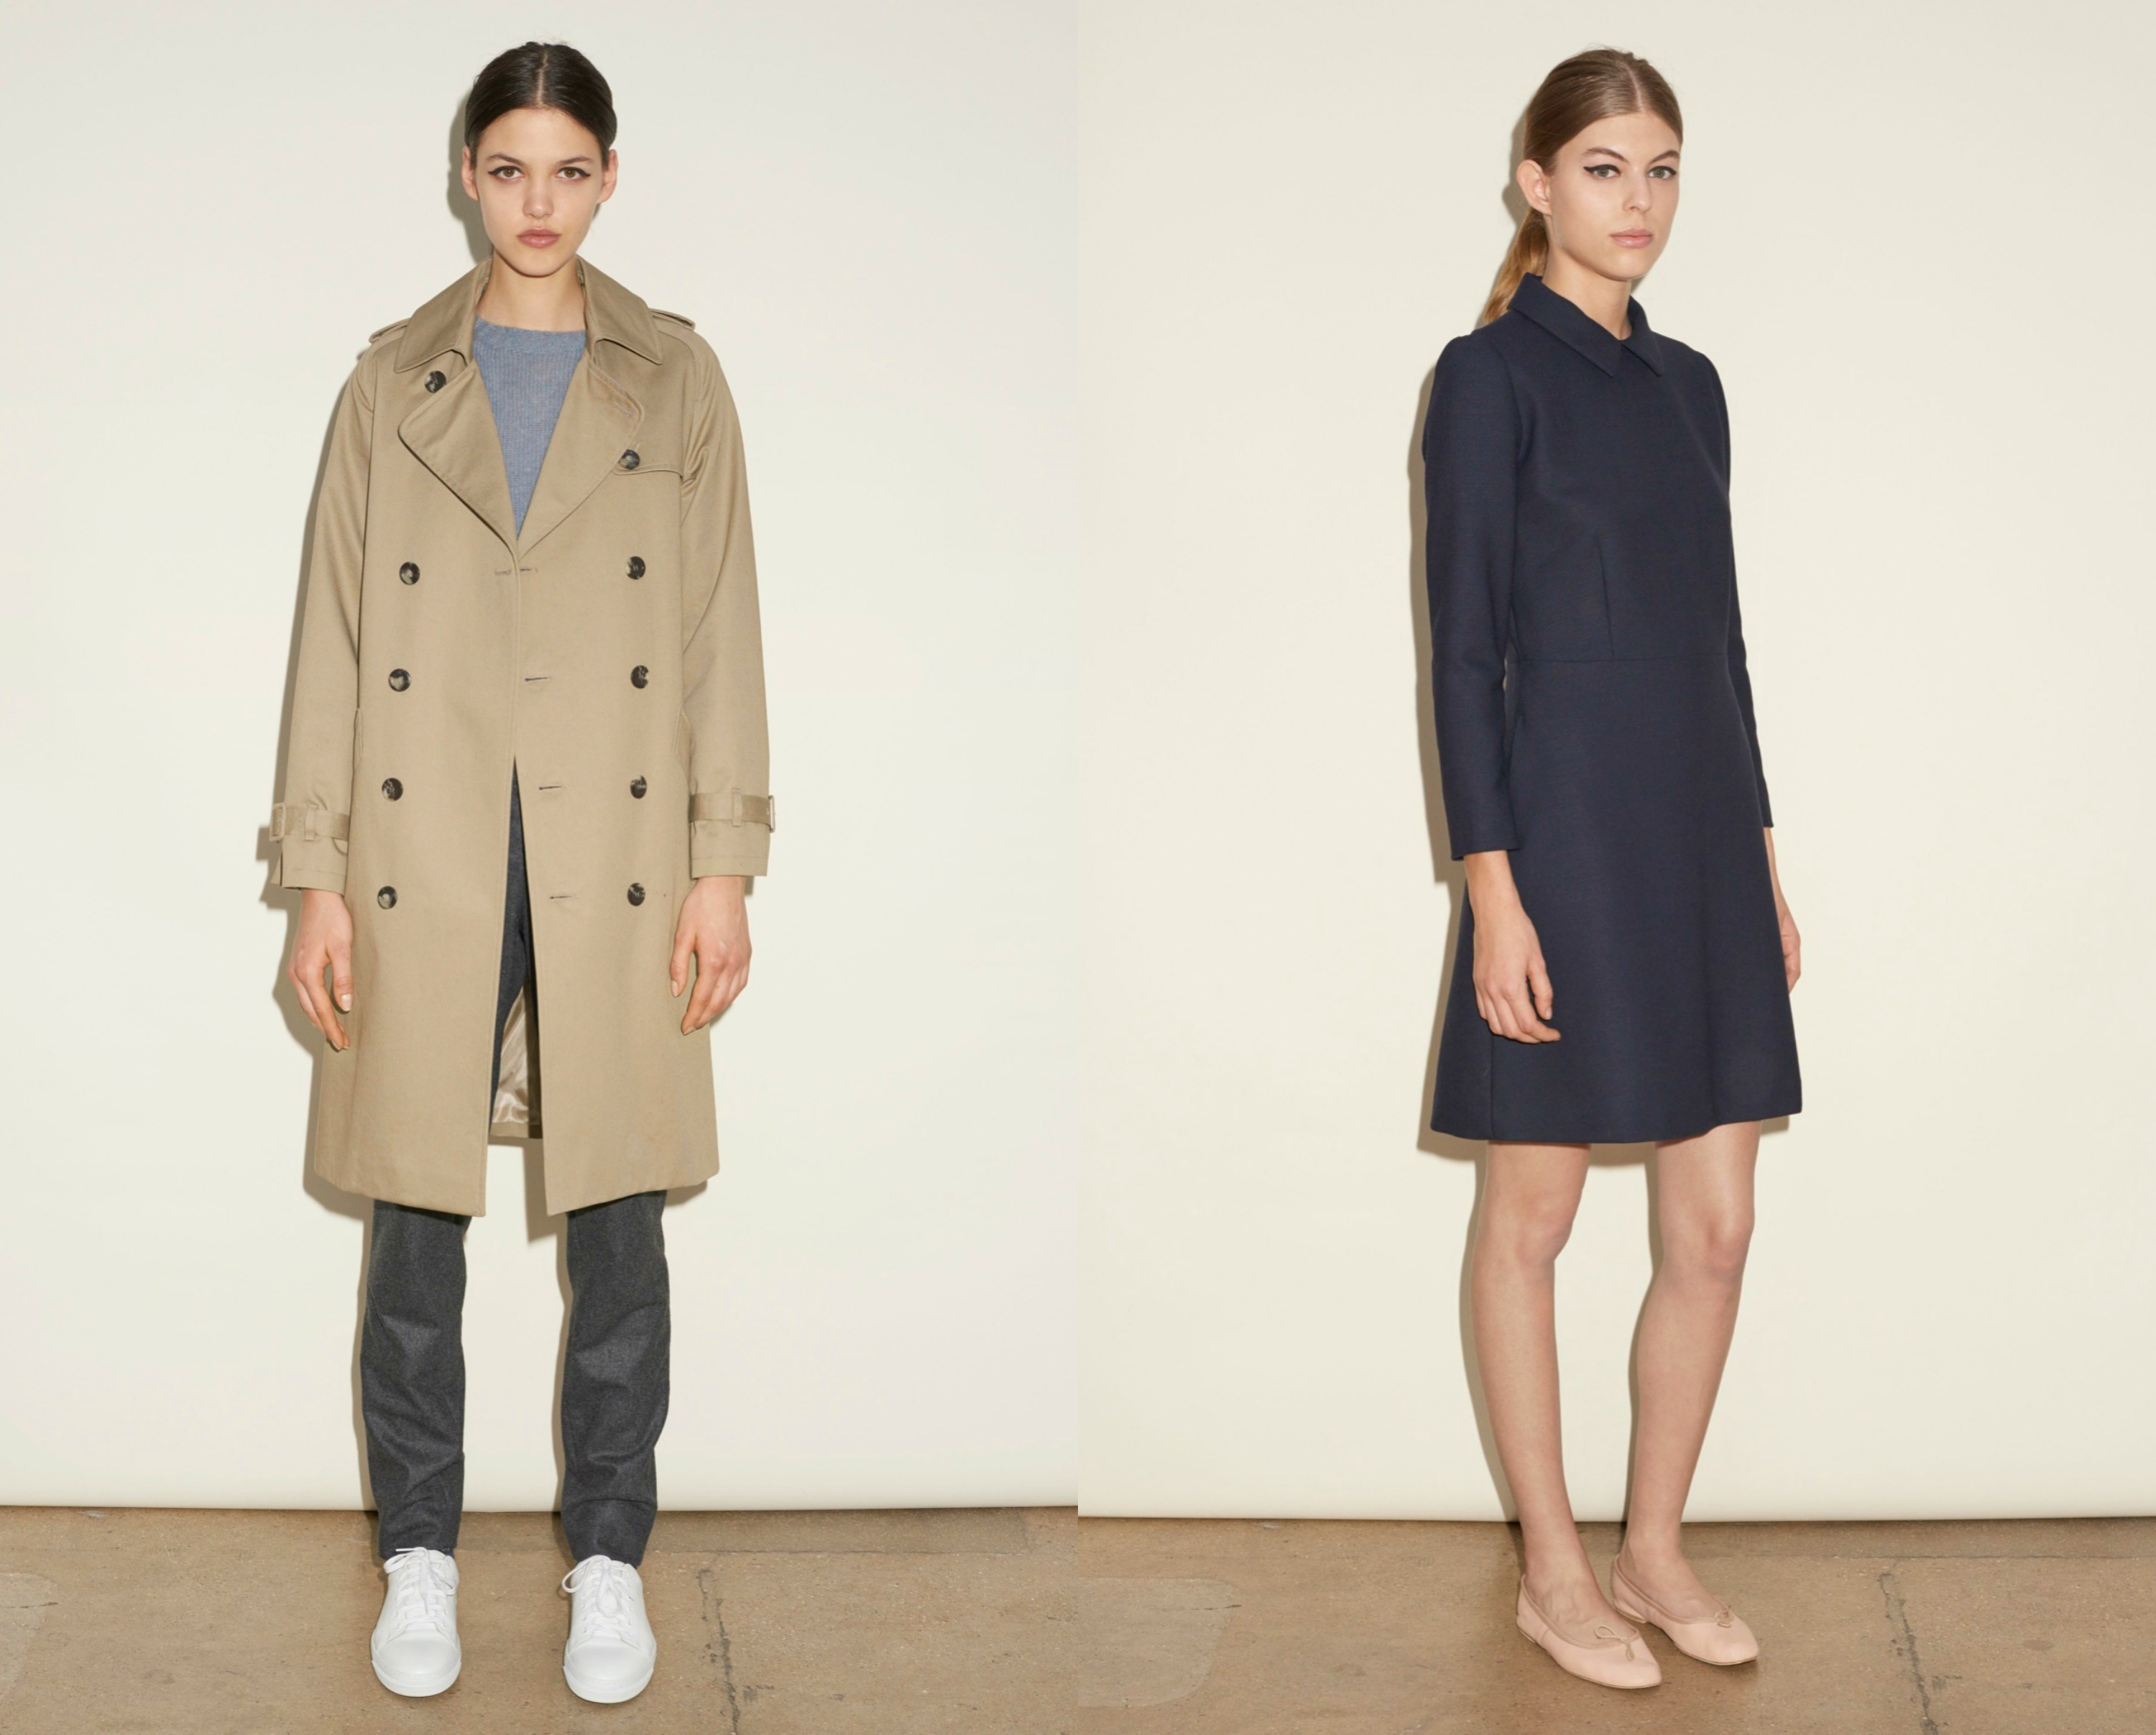 Trini blog | A.P.C Fall/Winter 2015 Collection